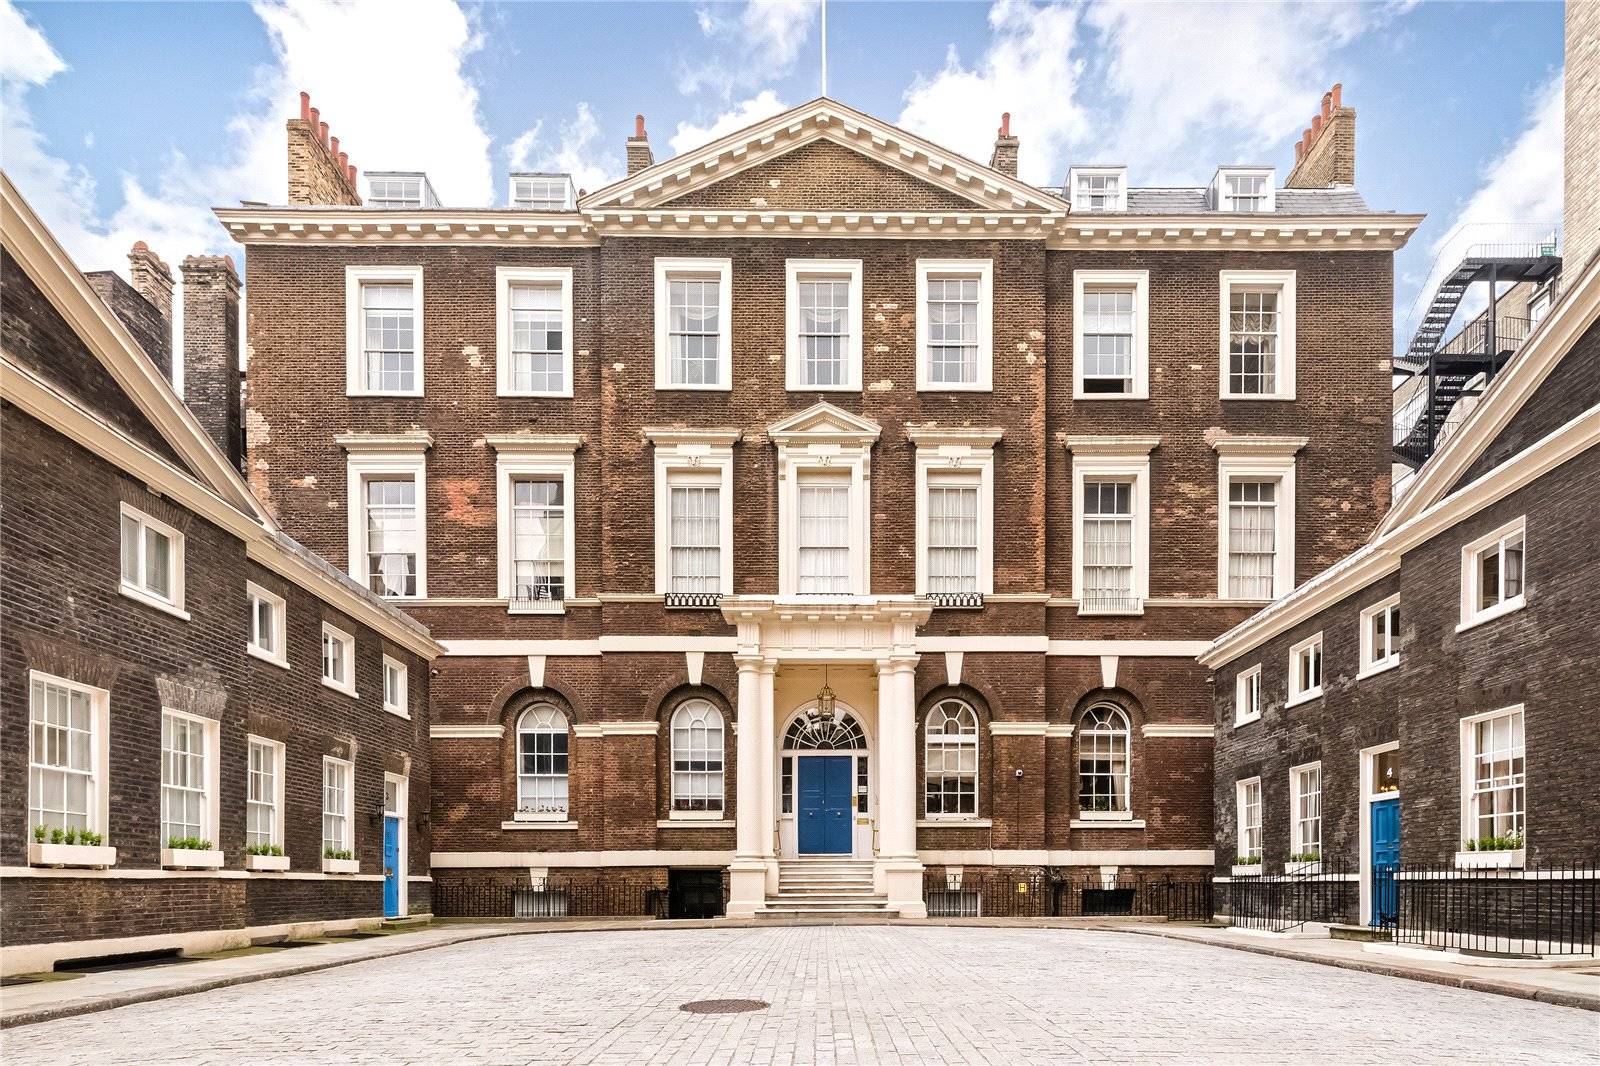 2 bedrooms Apartments for sale - Albany, London, W1J